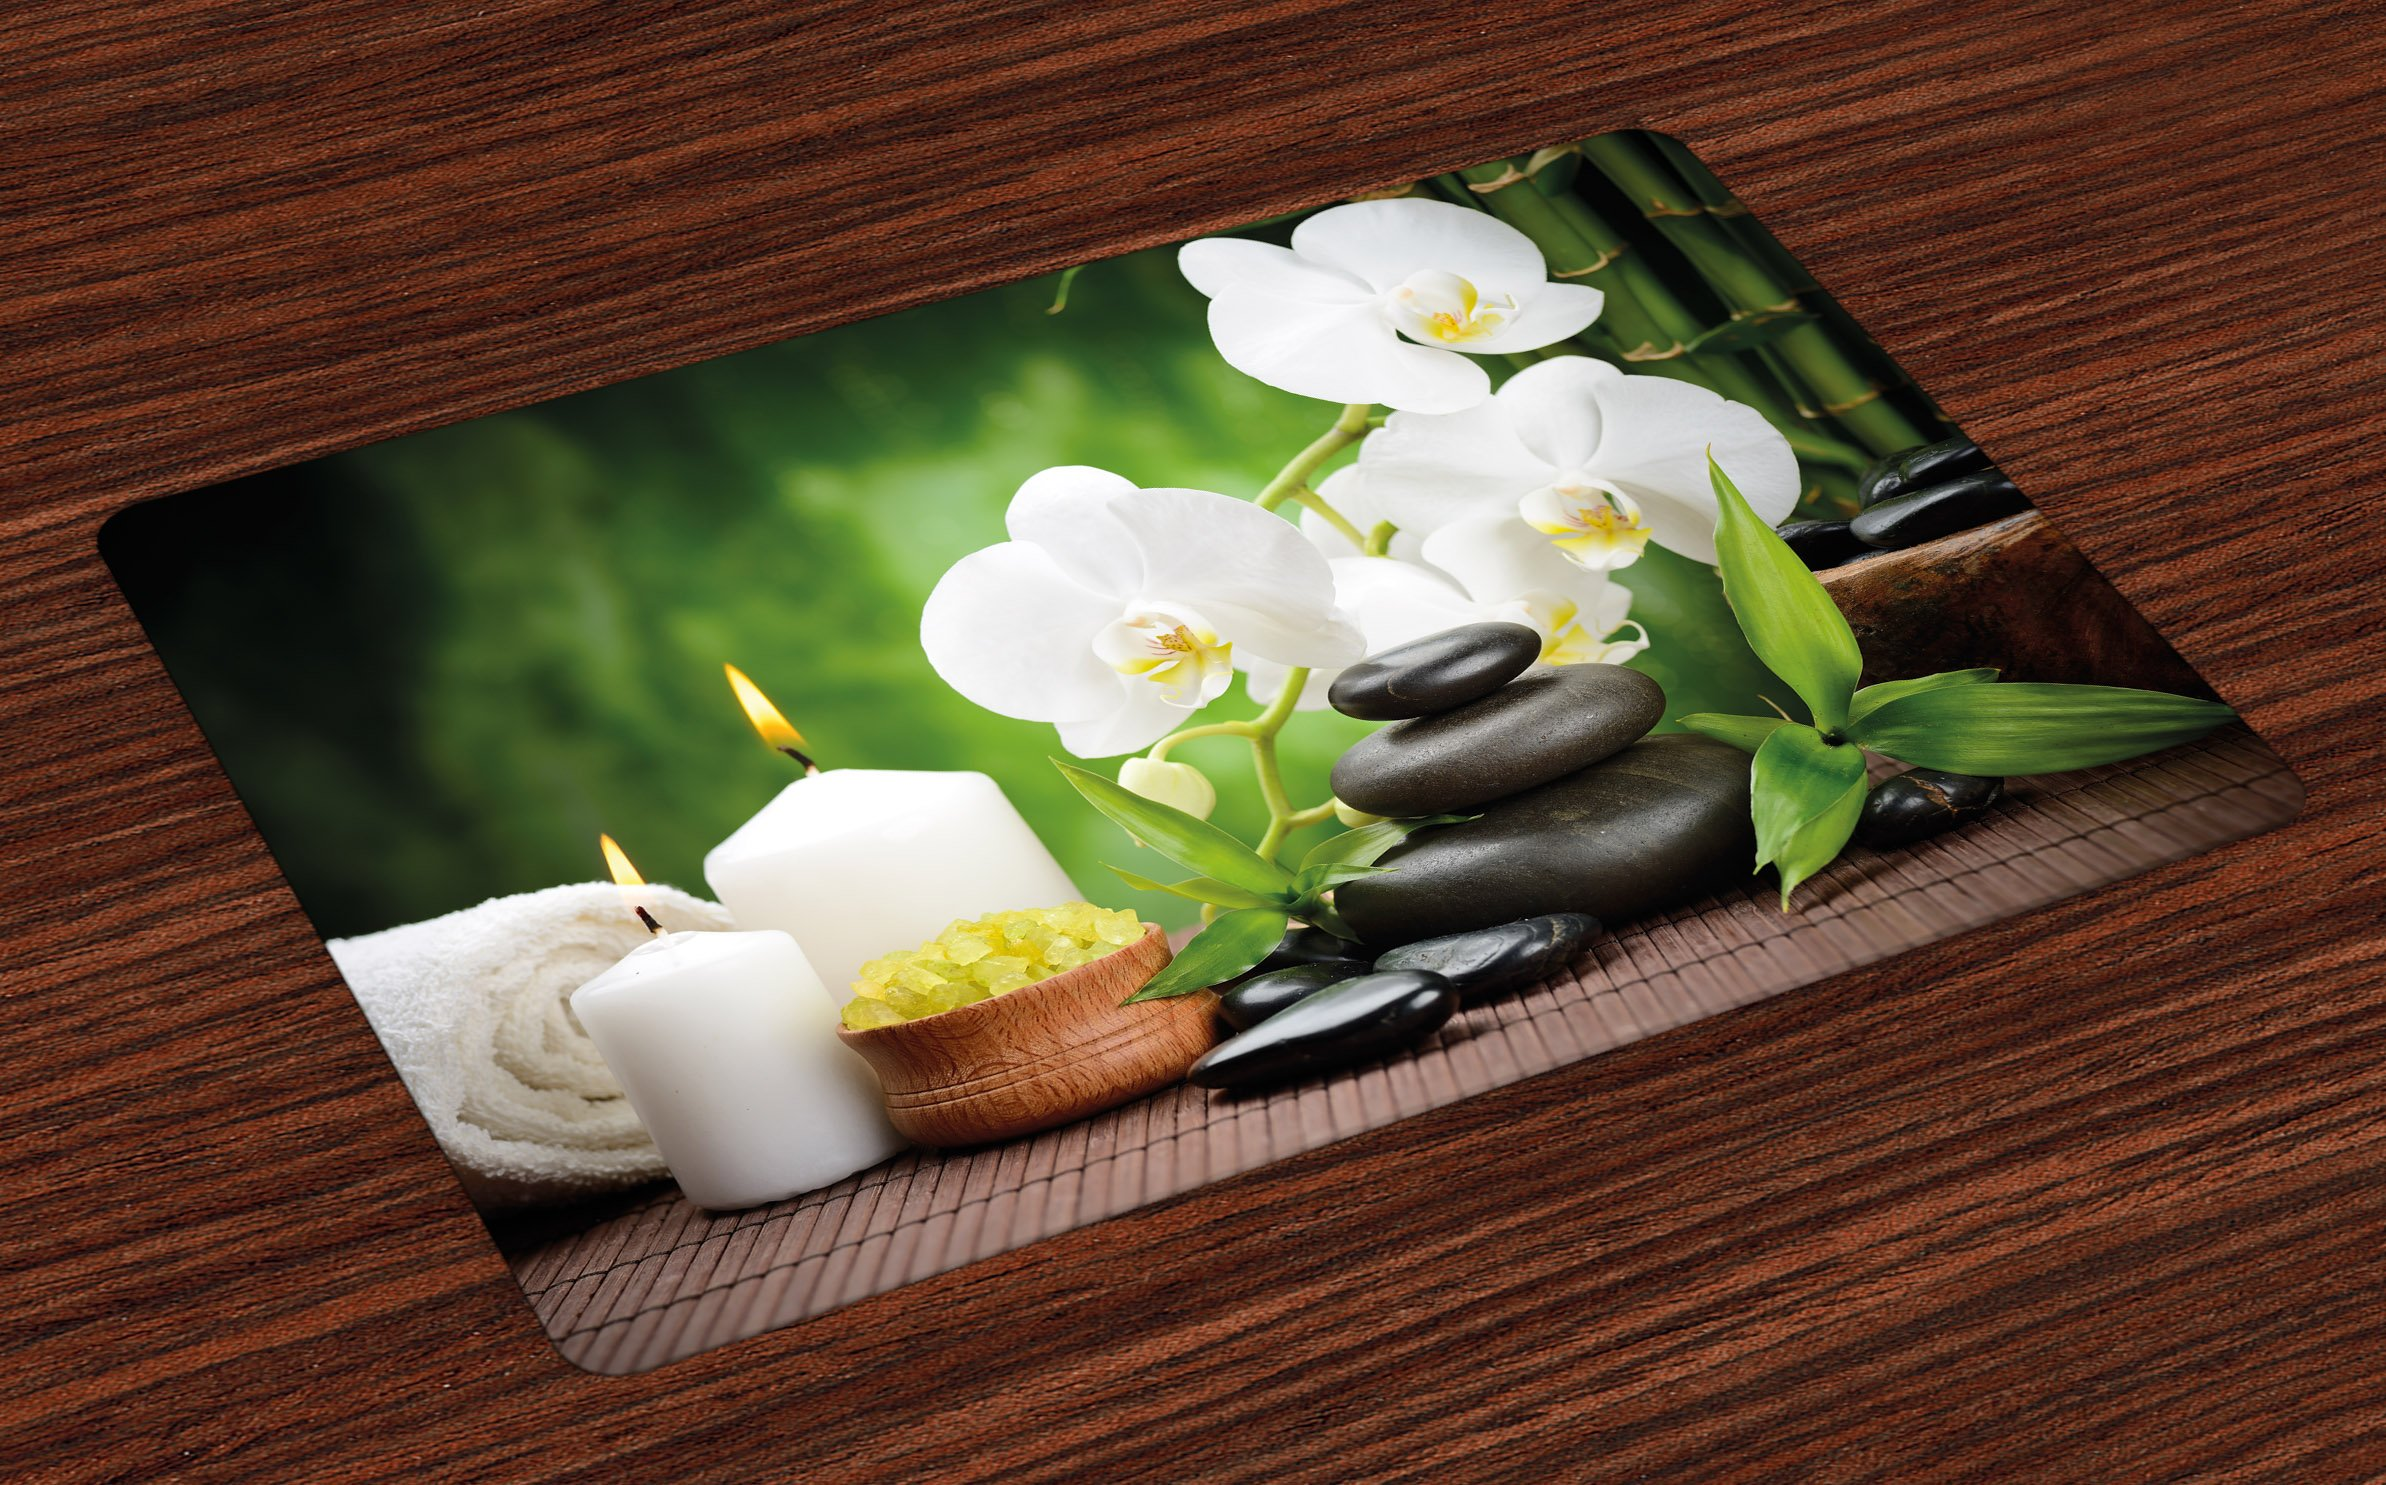 Ambesonne Spa Place Mats Set of 4, Zen Stones with Orchid and Candles Green Plants at the Background Print, Washable Fabric Placemats for Dining Room Kitchen Table Decor, White Green and Black